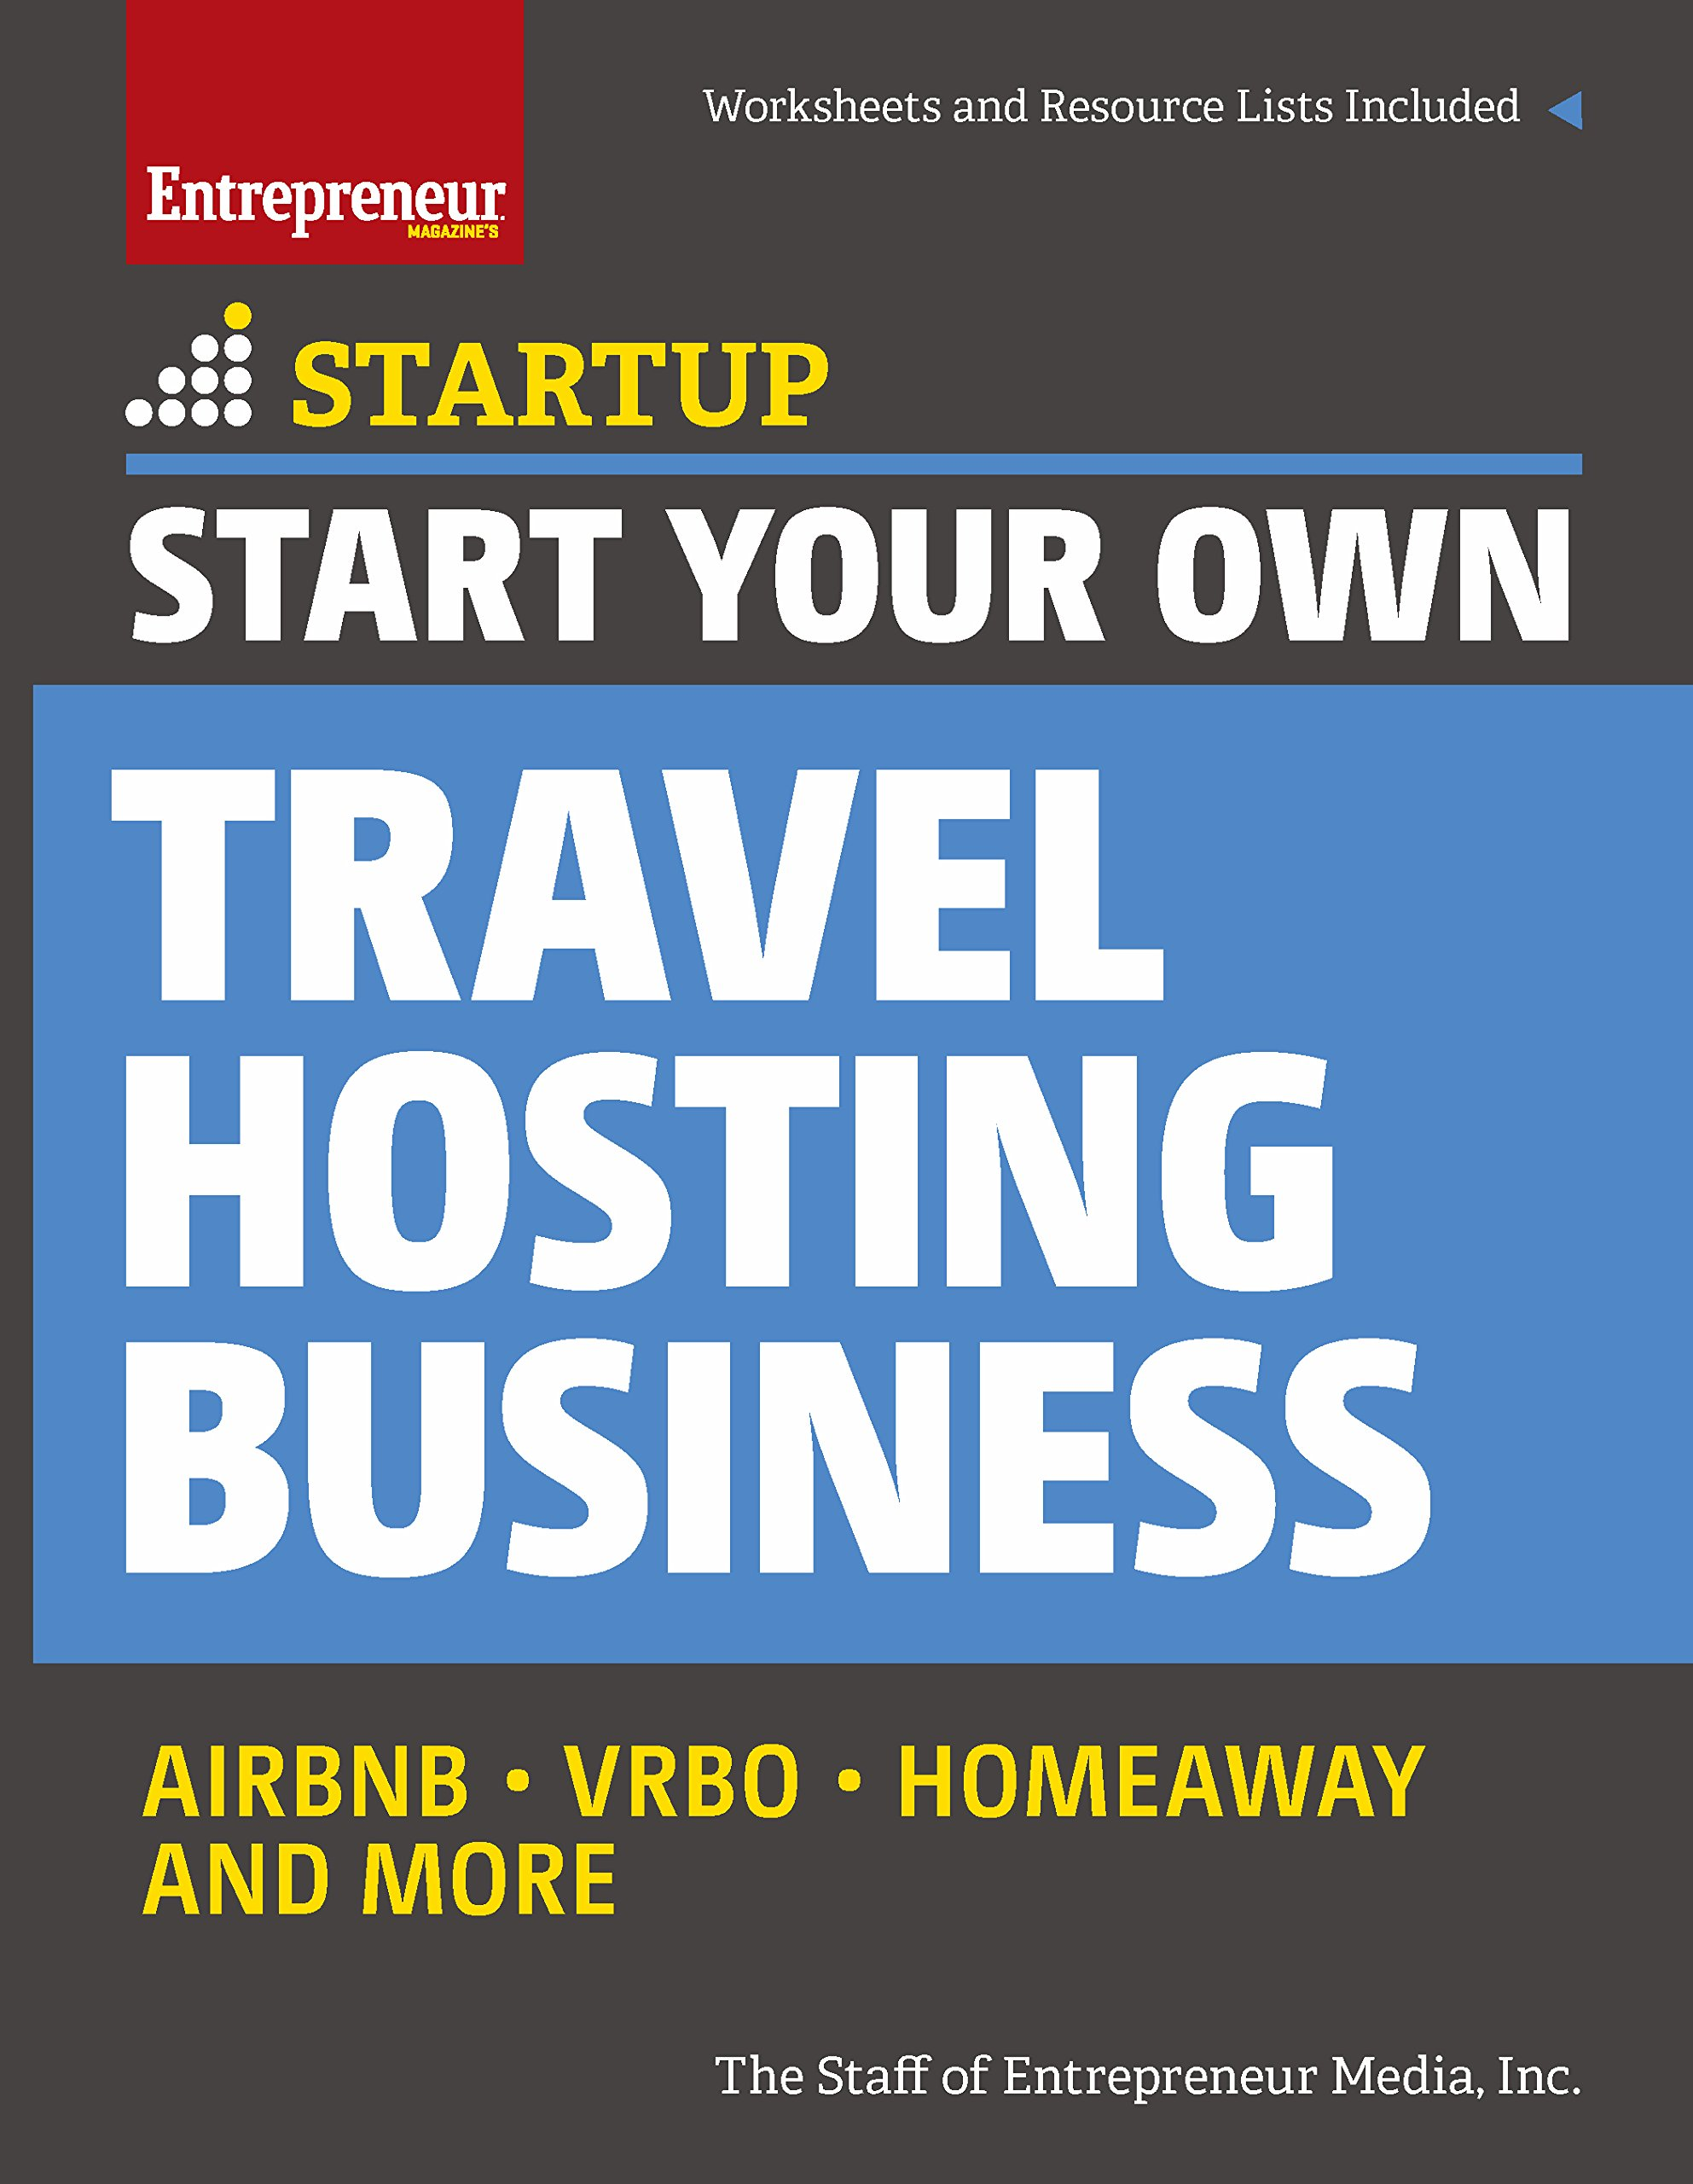 Start Your Own Travel Hosting Business: Airbnb, VRBO